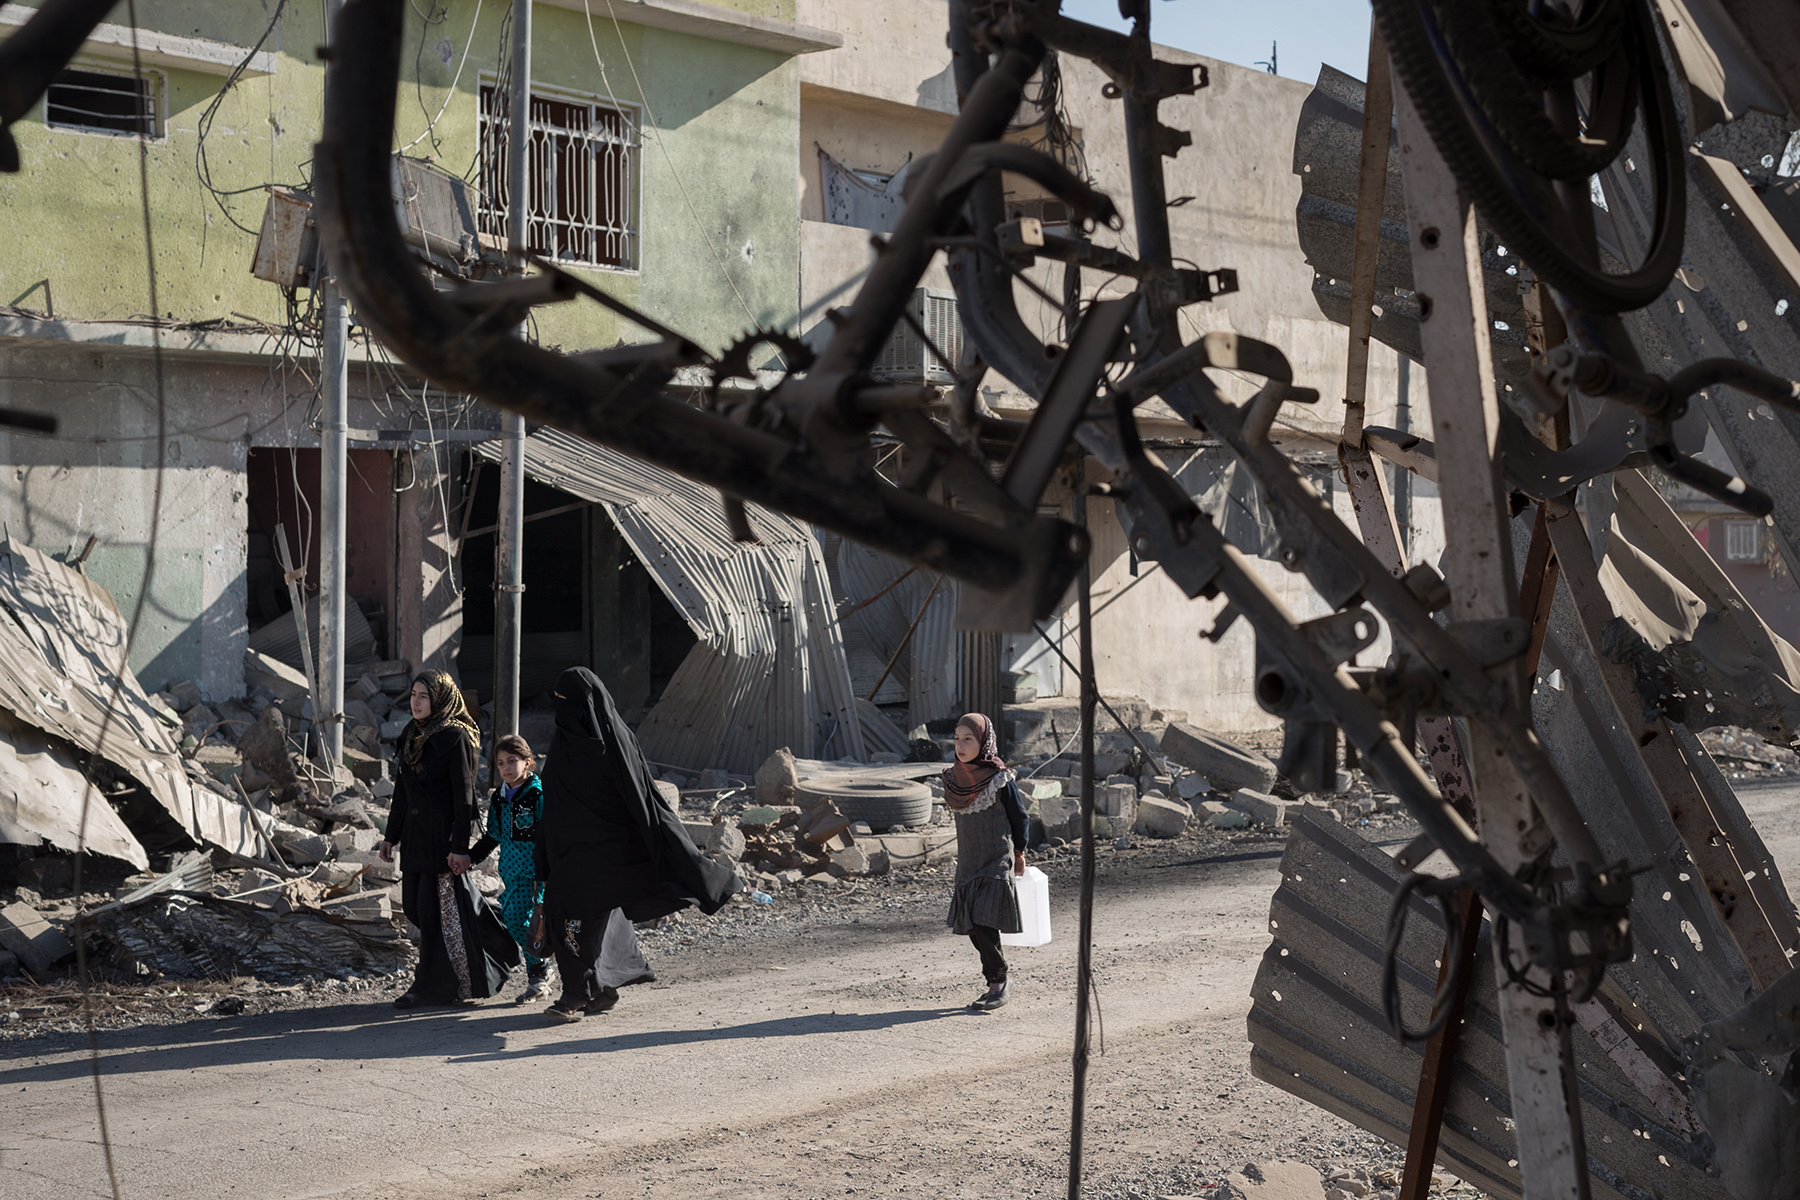 Women and girls walk ahead the remains of a two-wheeled shop in Al-Quds neighborhood, liberated three days before. Mosul, Iraq on Jan. 6, 2017.